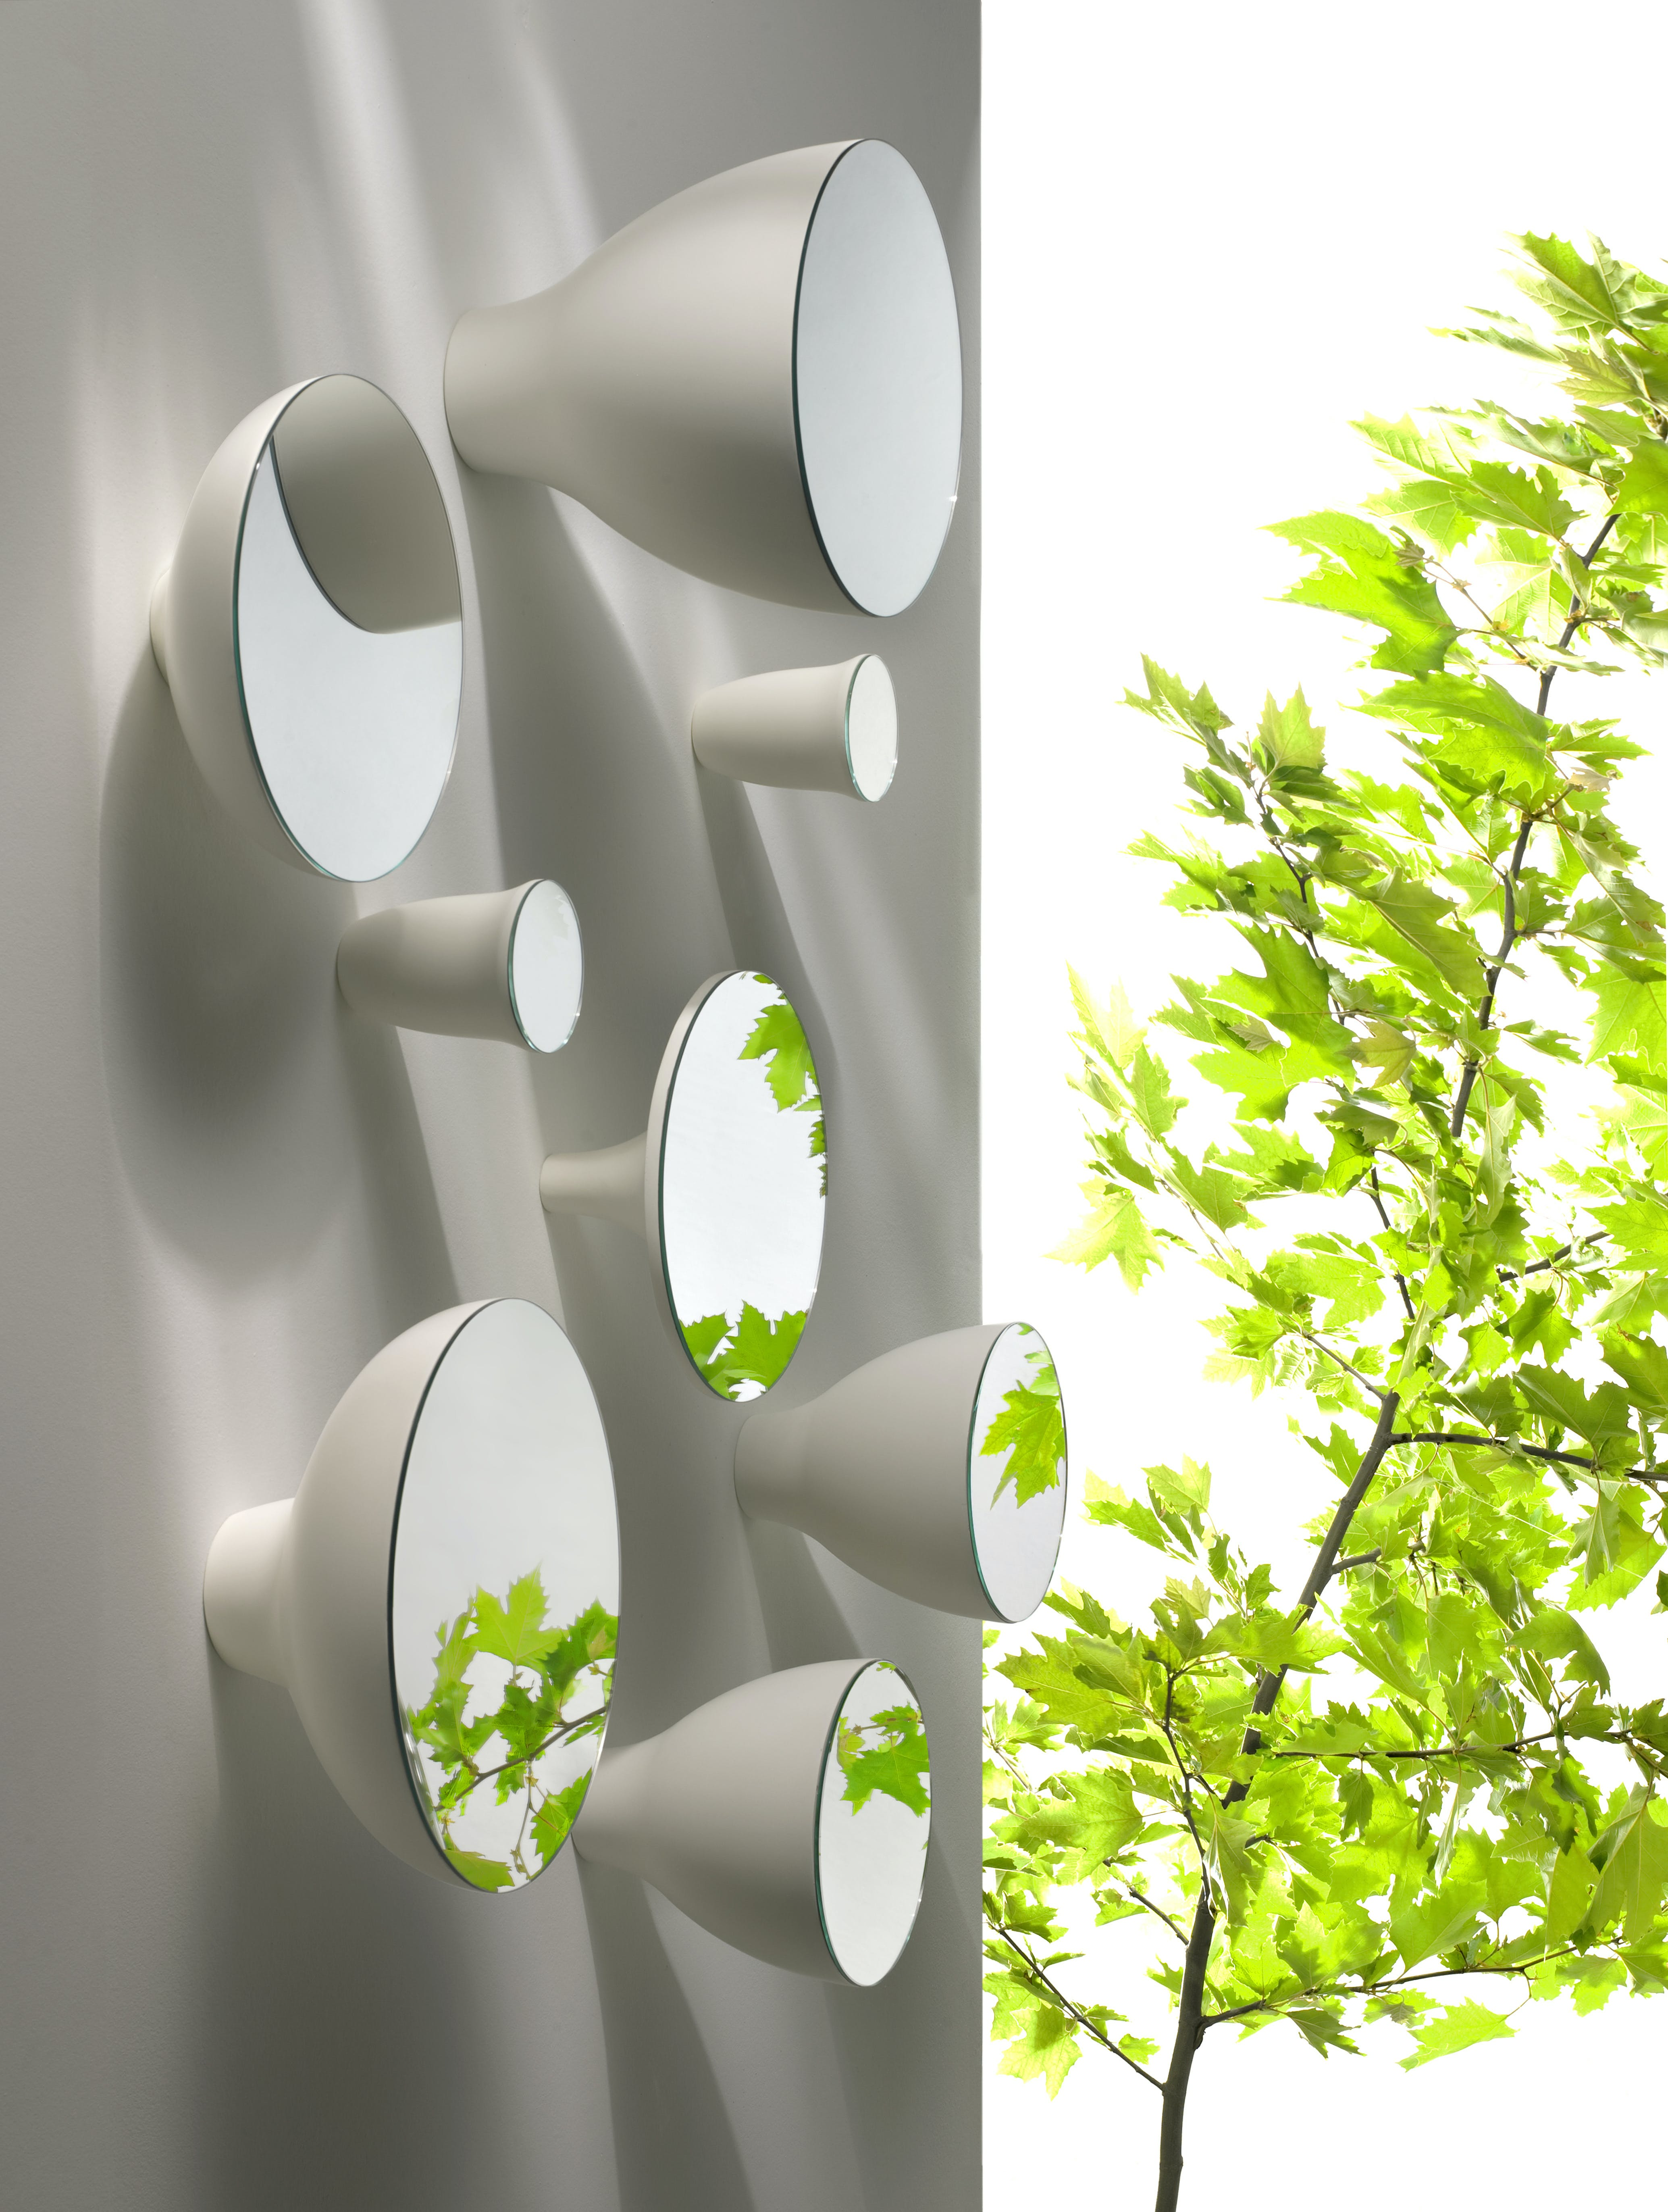 imperfetto lab mirrors at haute living